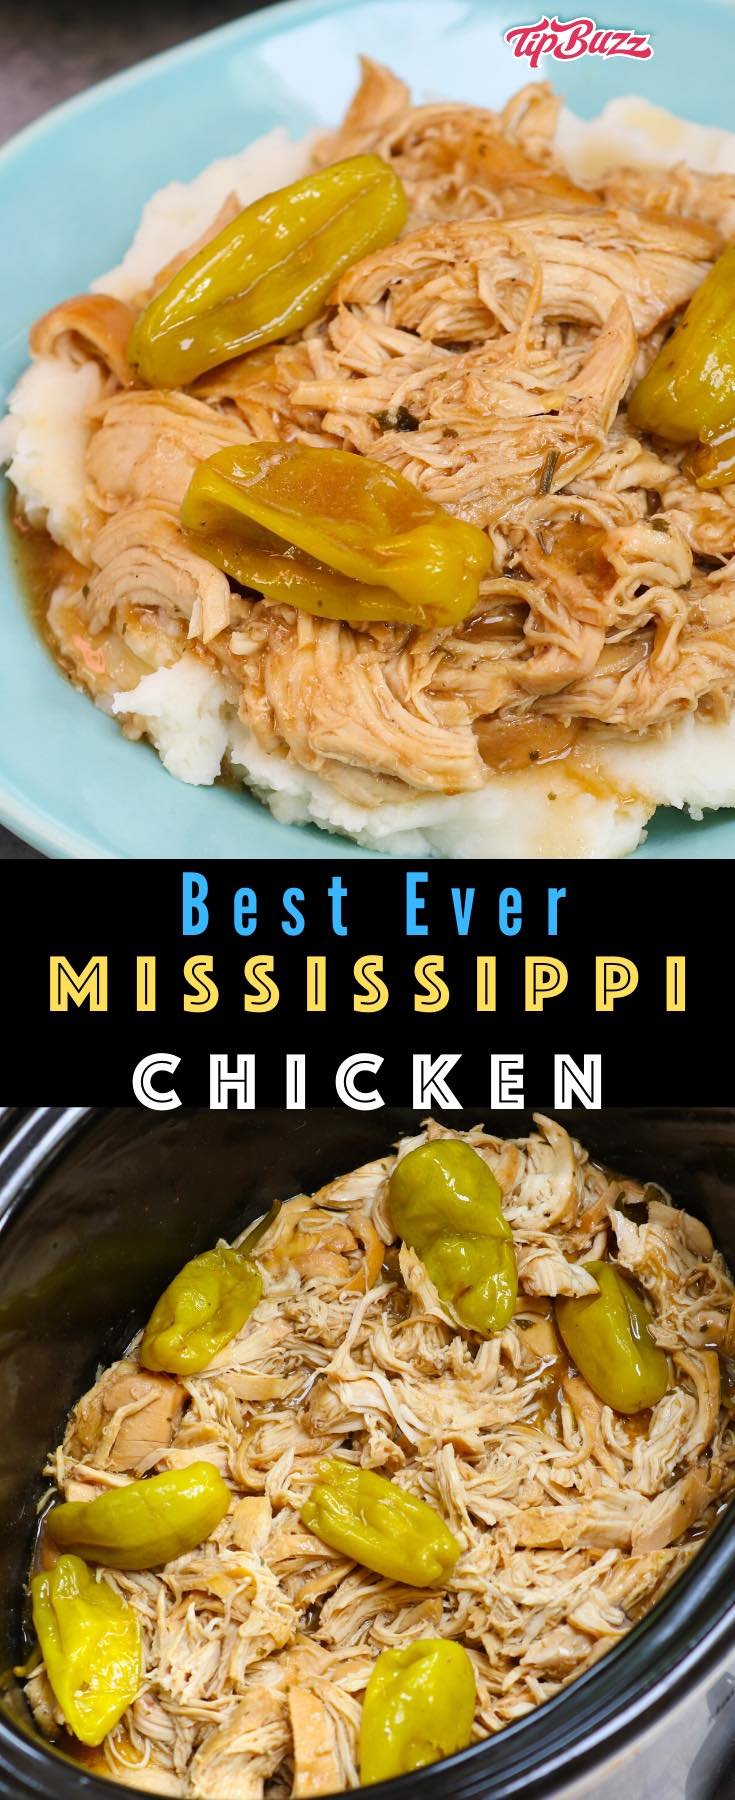 Mississippi Chicken is an easy crockpot recipe with just 5 minutes of prep time and 5 ingredients, delicious served with mashed potatoes or on a bun #mississippichicken